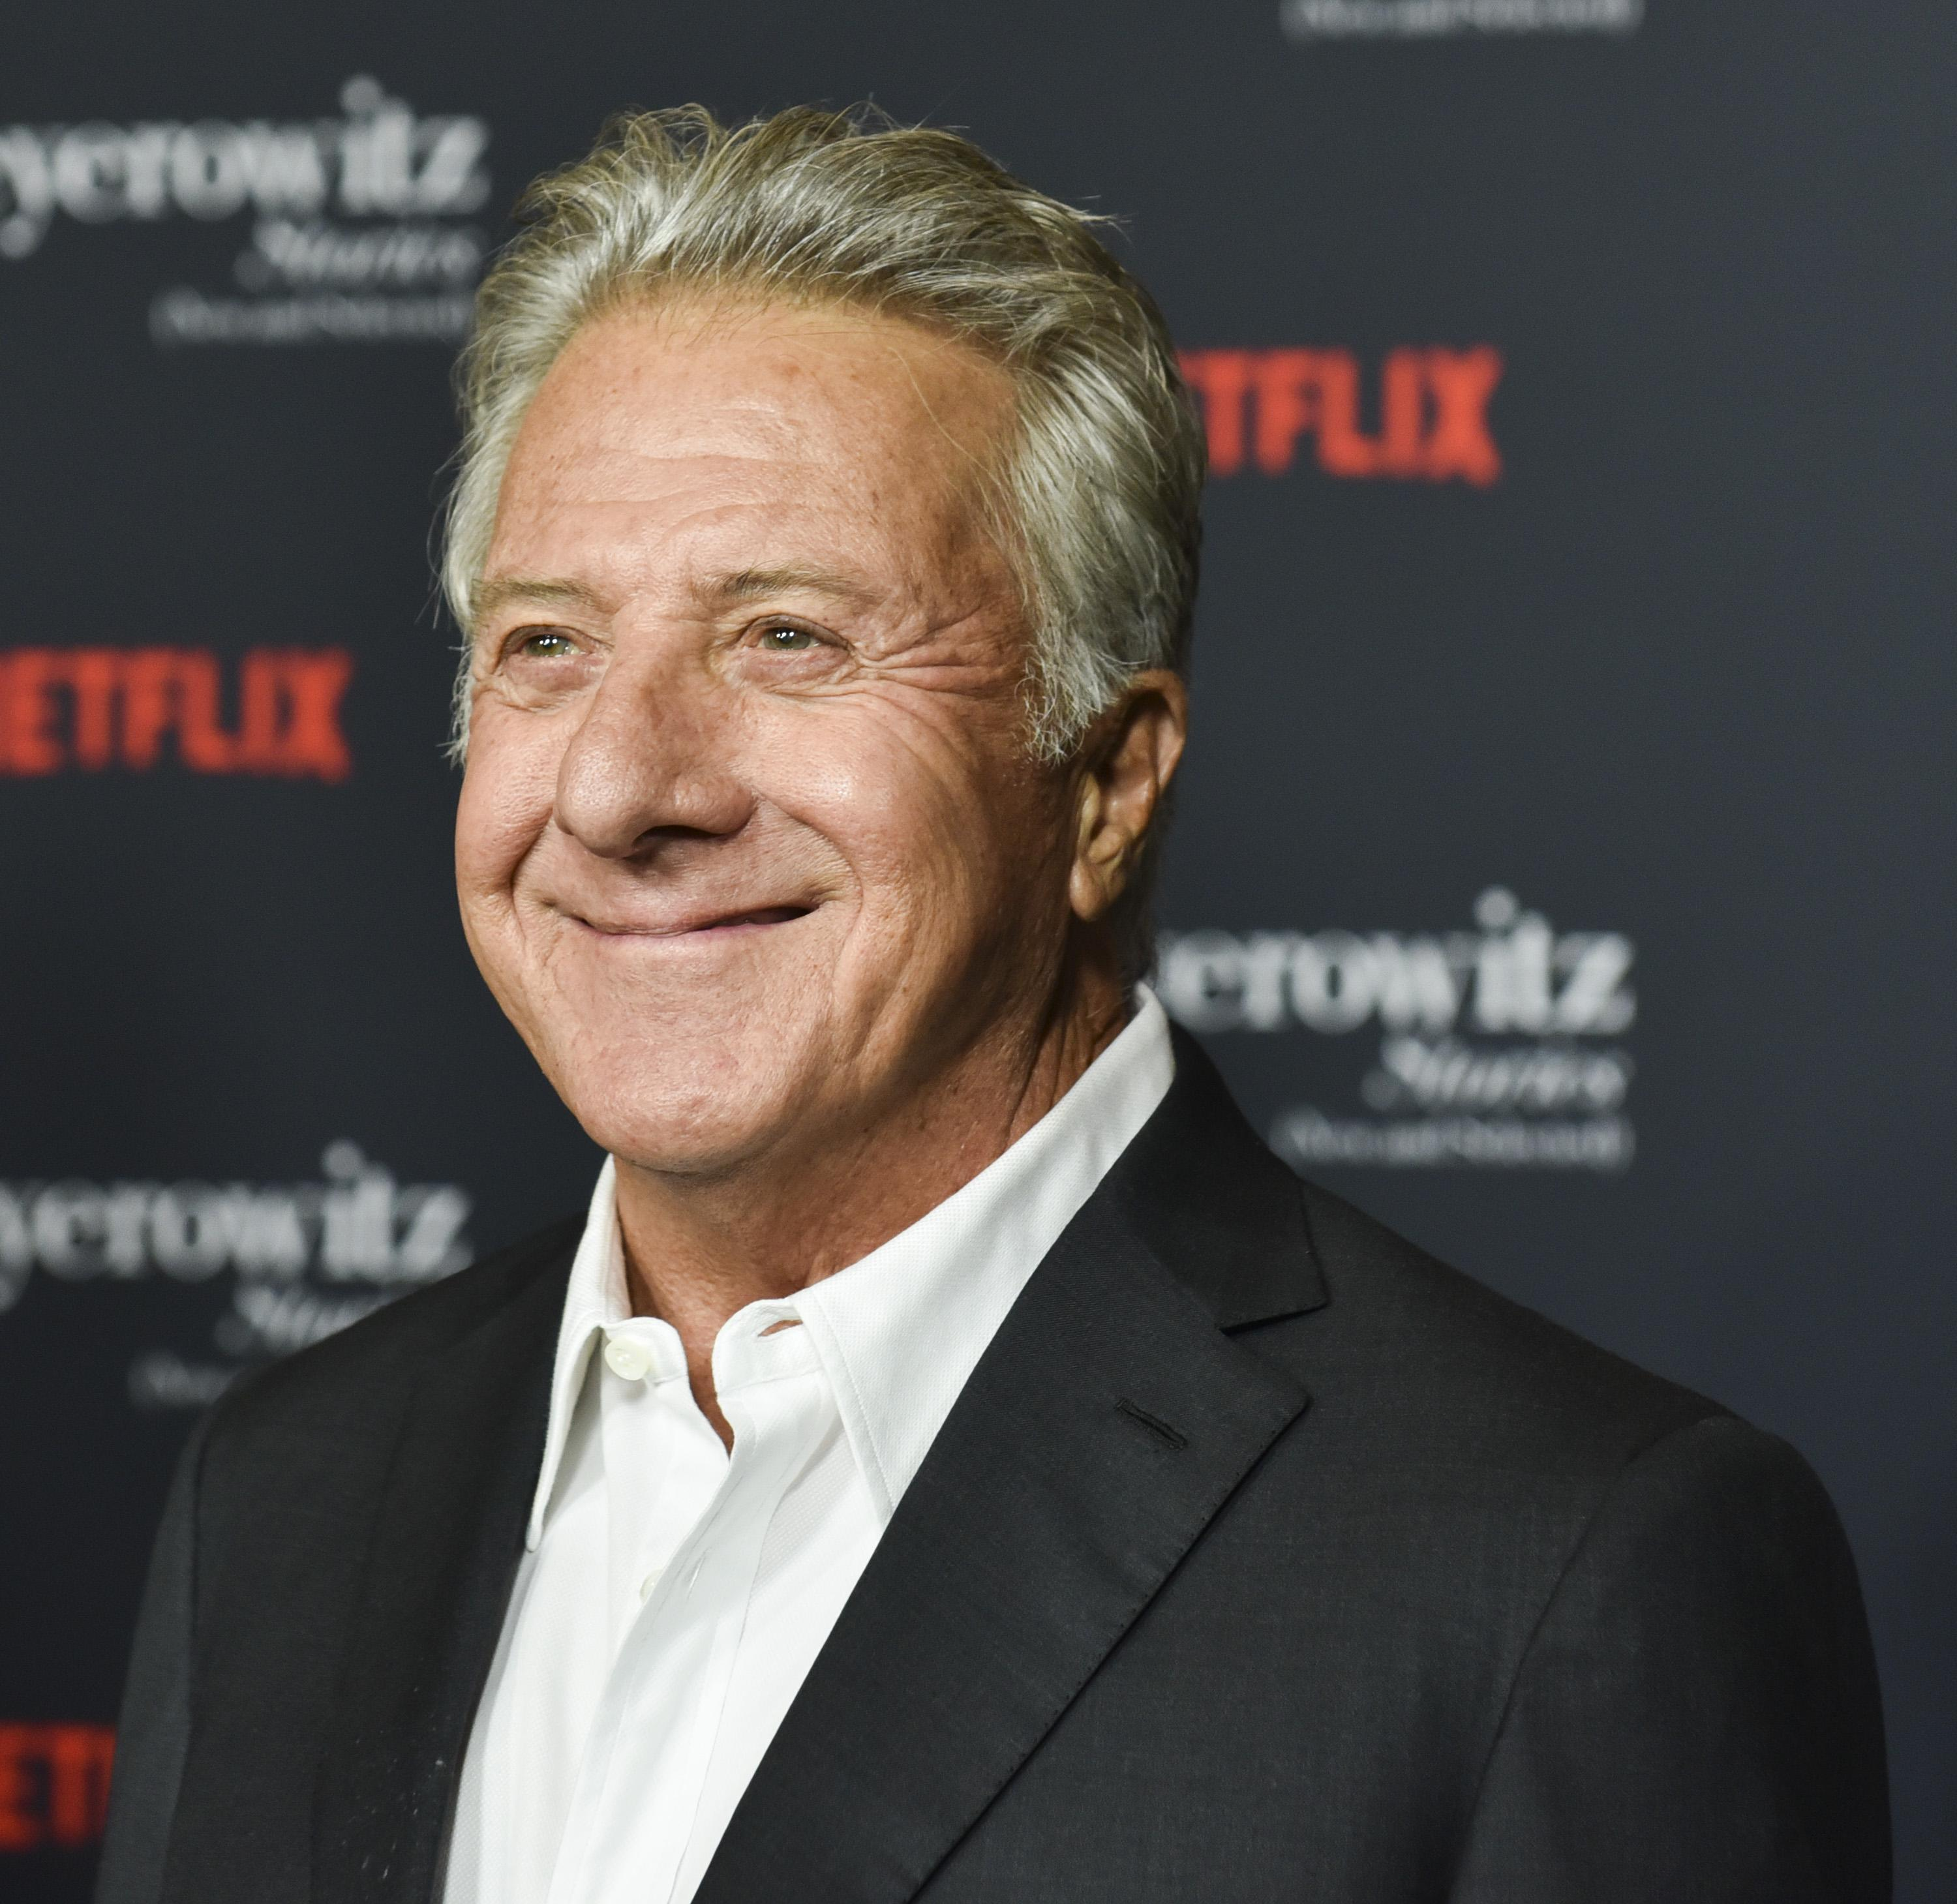 Donald Trump Faces Backlash Over Insensitive Tweets After: Dustin Hoffman Speaks Out Following Allegations Of Sexual